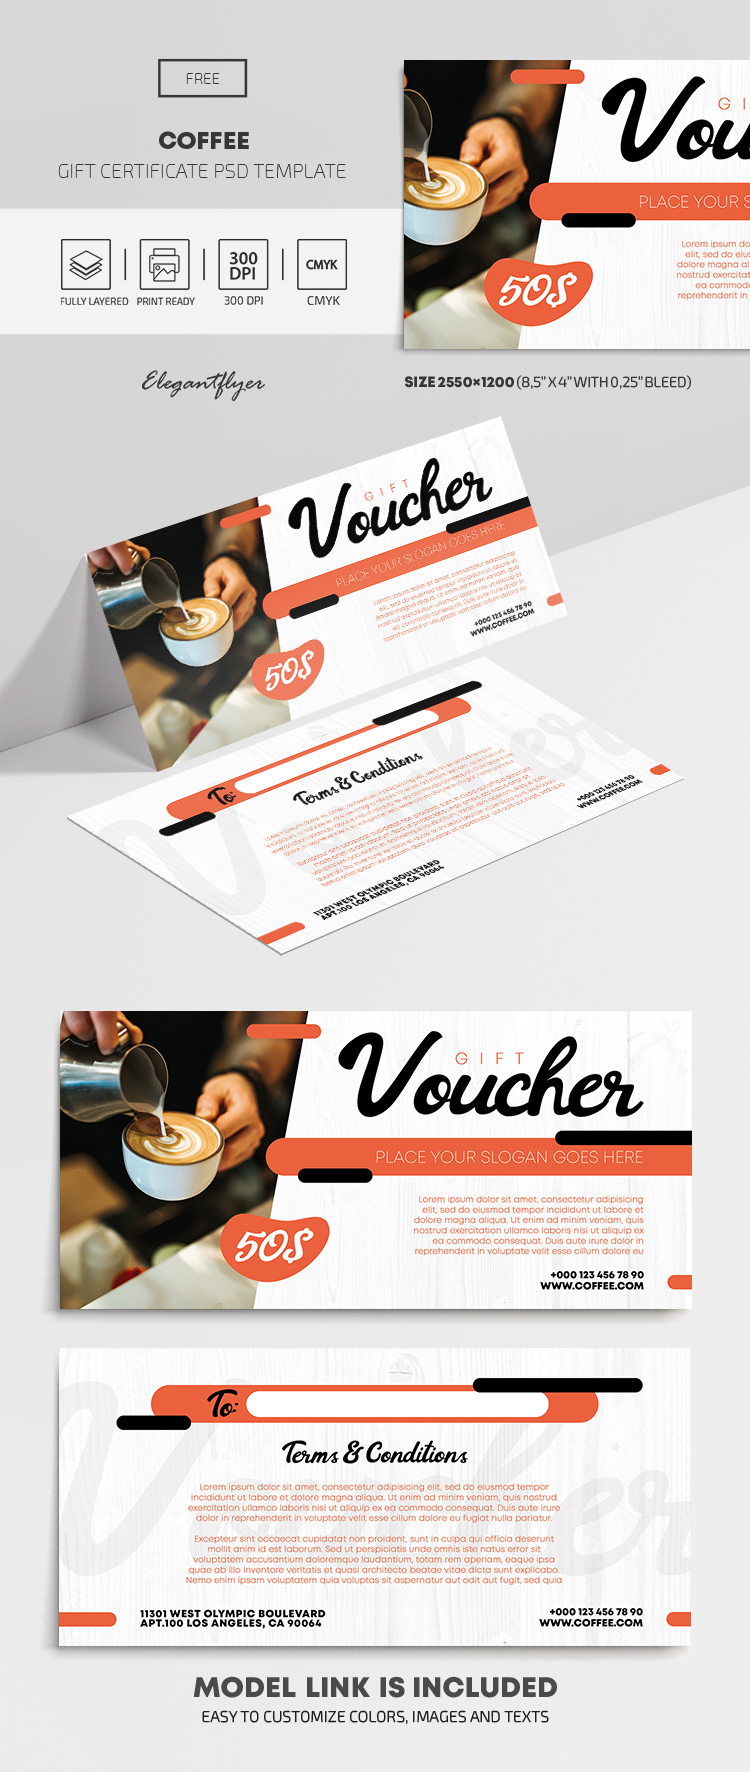 Coffee – Free Gift Certificate Template in PSD